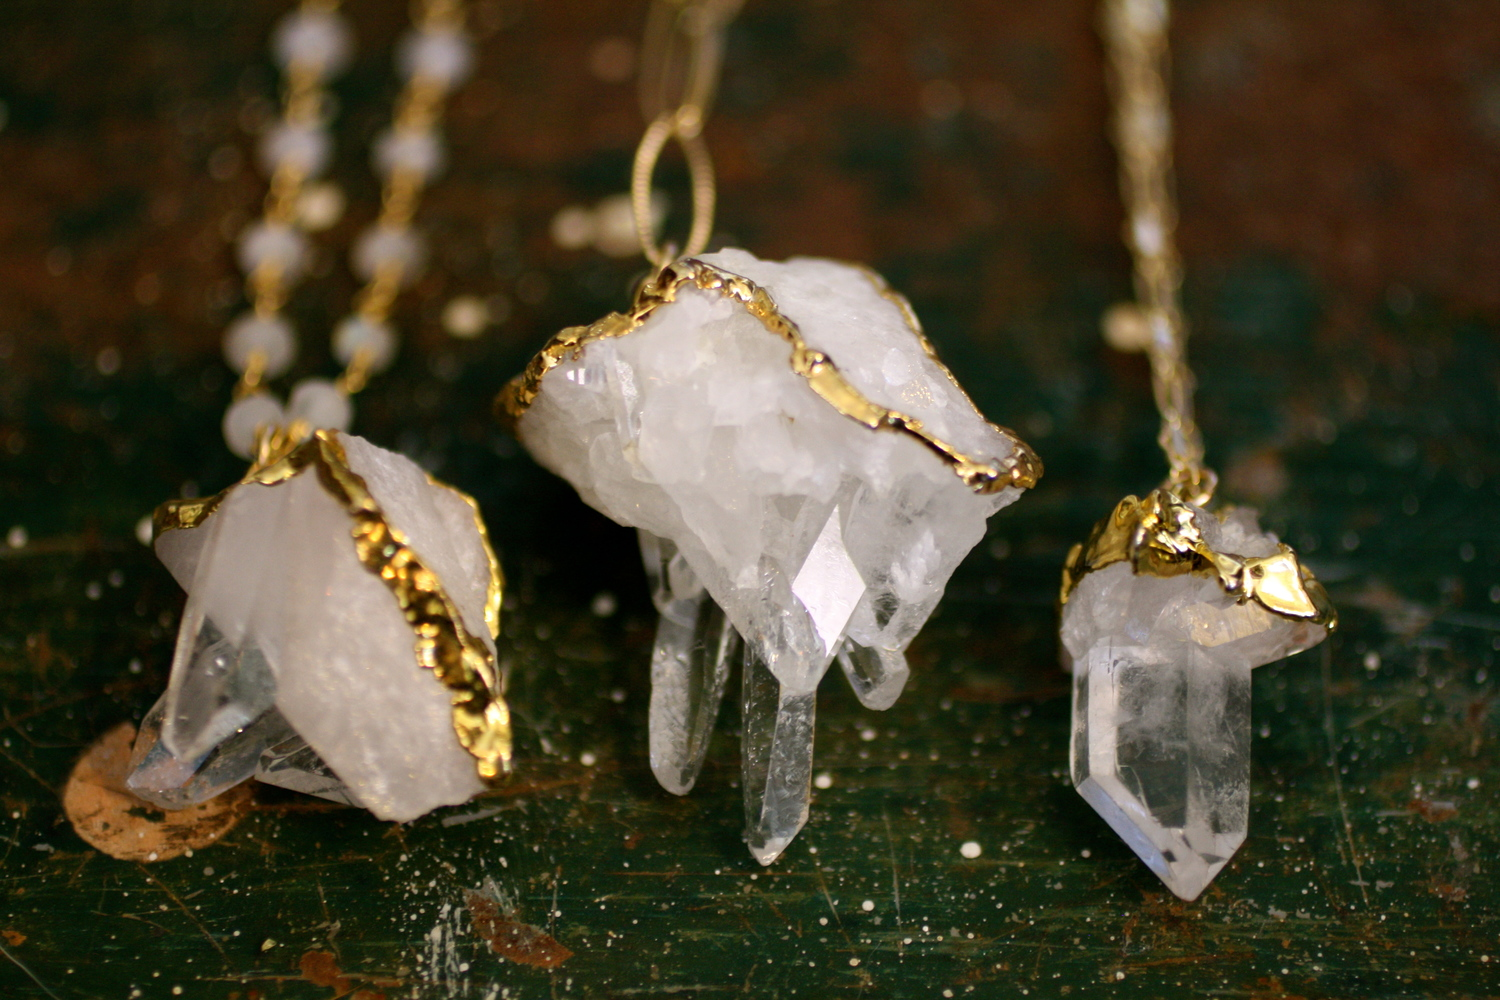 Sugar+Mountain+Crystal+Quartz+Spear+Cluster+GF+Moonstone+Beaded+Chain+Necklaces_52.jpg